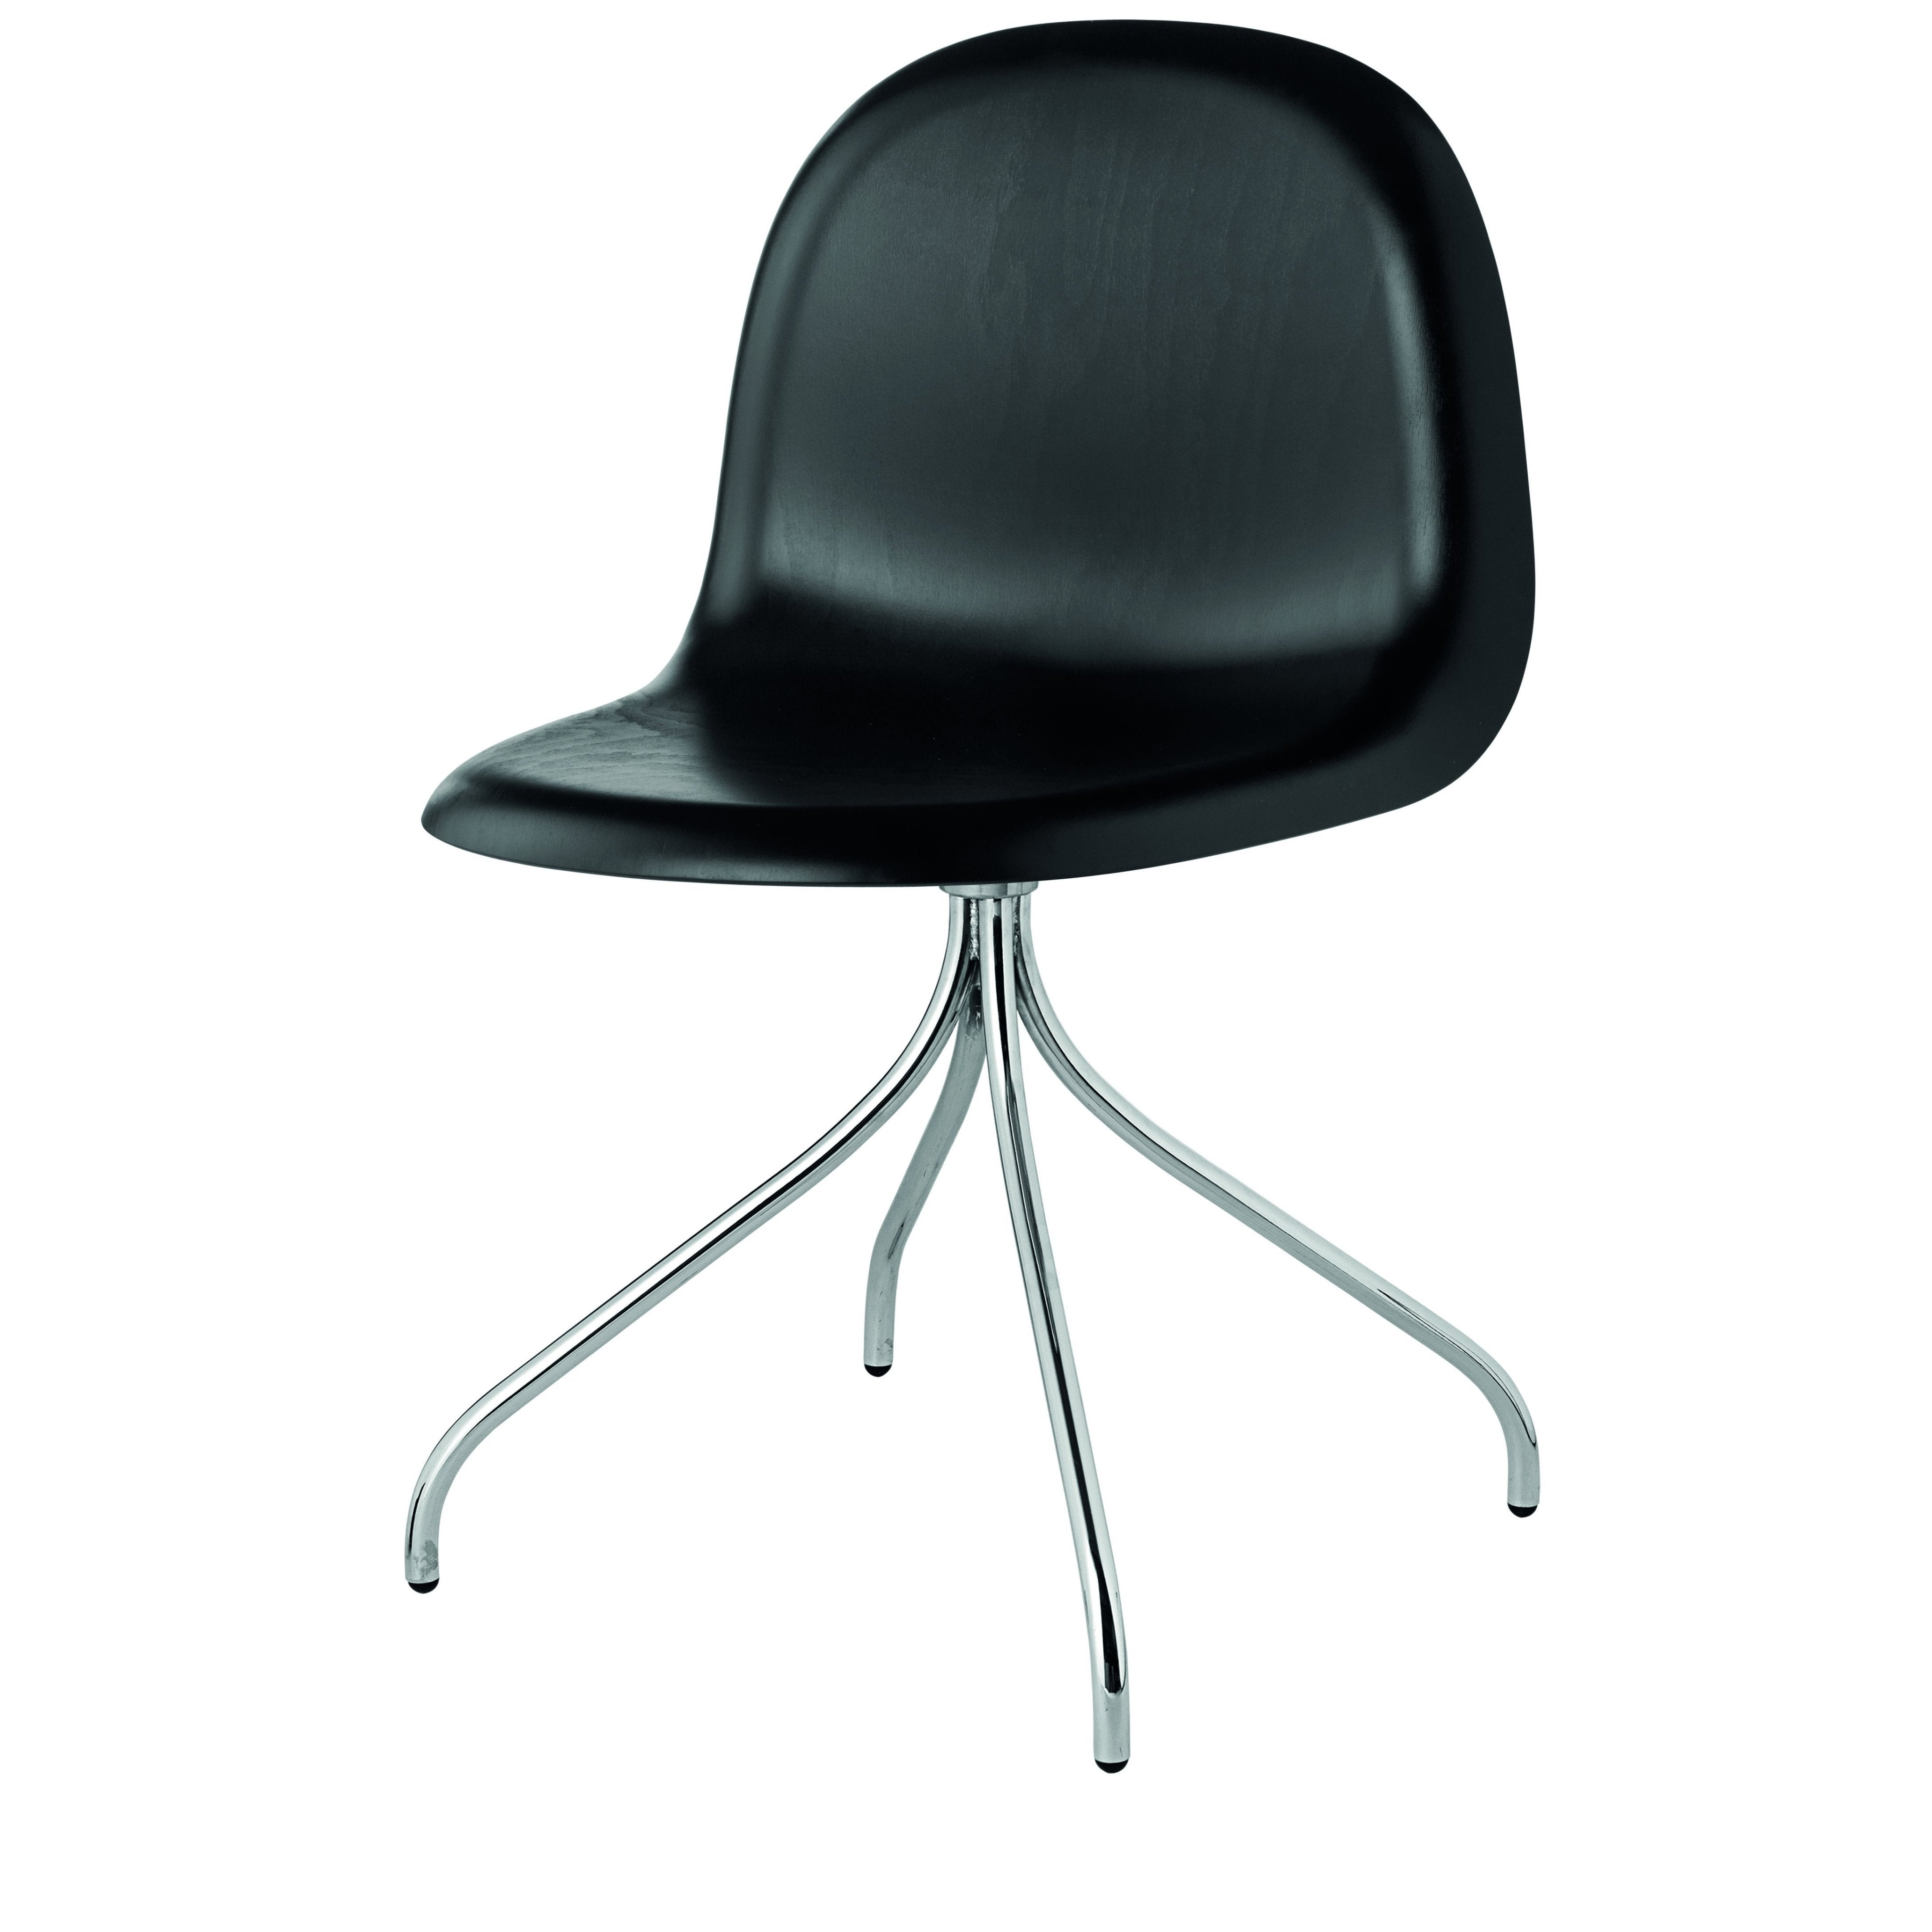 3D Meeting Chair: Swivel Base: Black Stained Beech Shell + Chrome Base